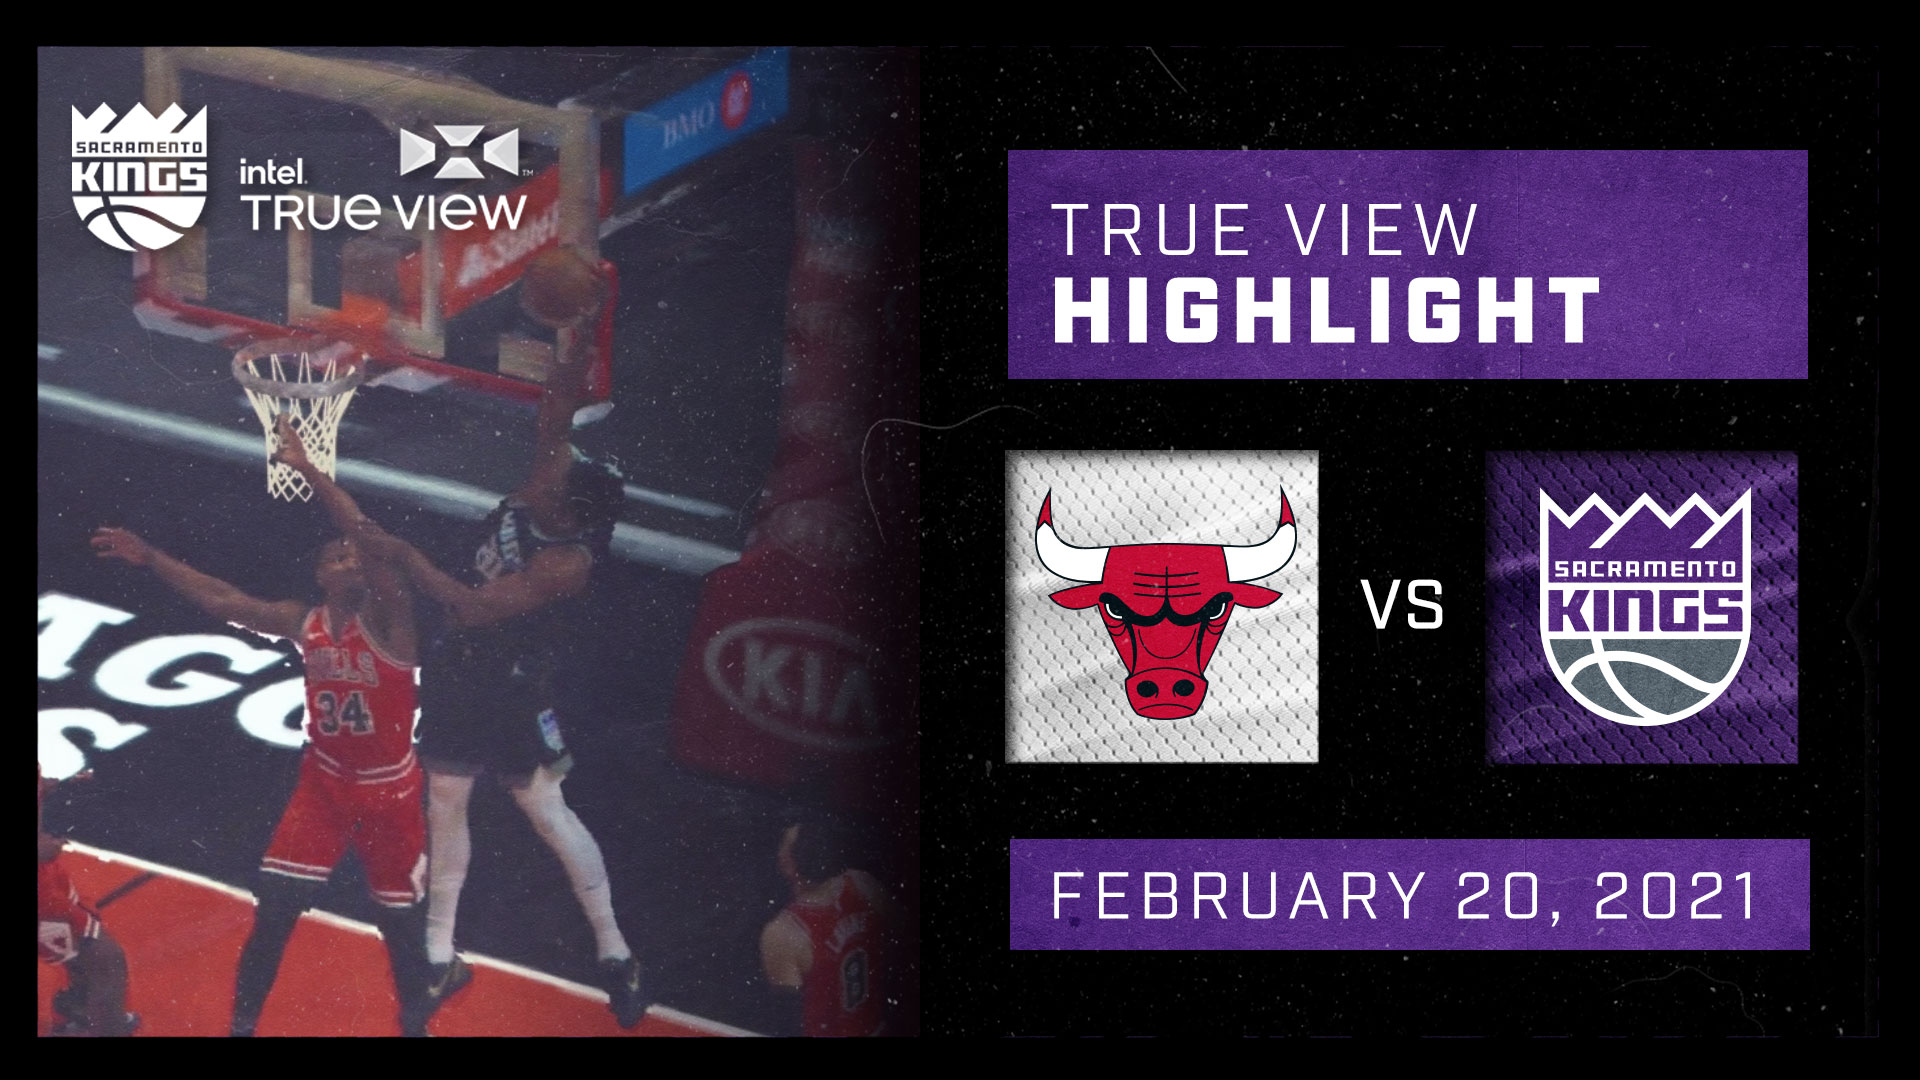 Intel True View Highlight - Fox Alley-Oop to Whiteside vs Bulls 2.20.21